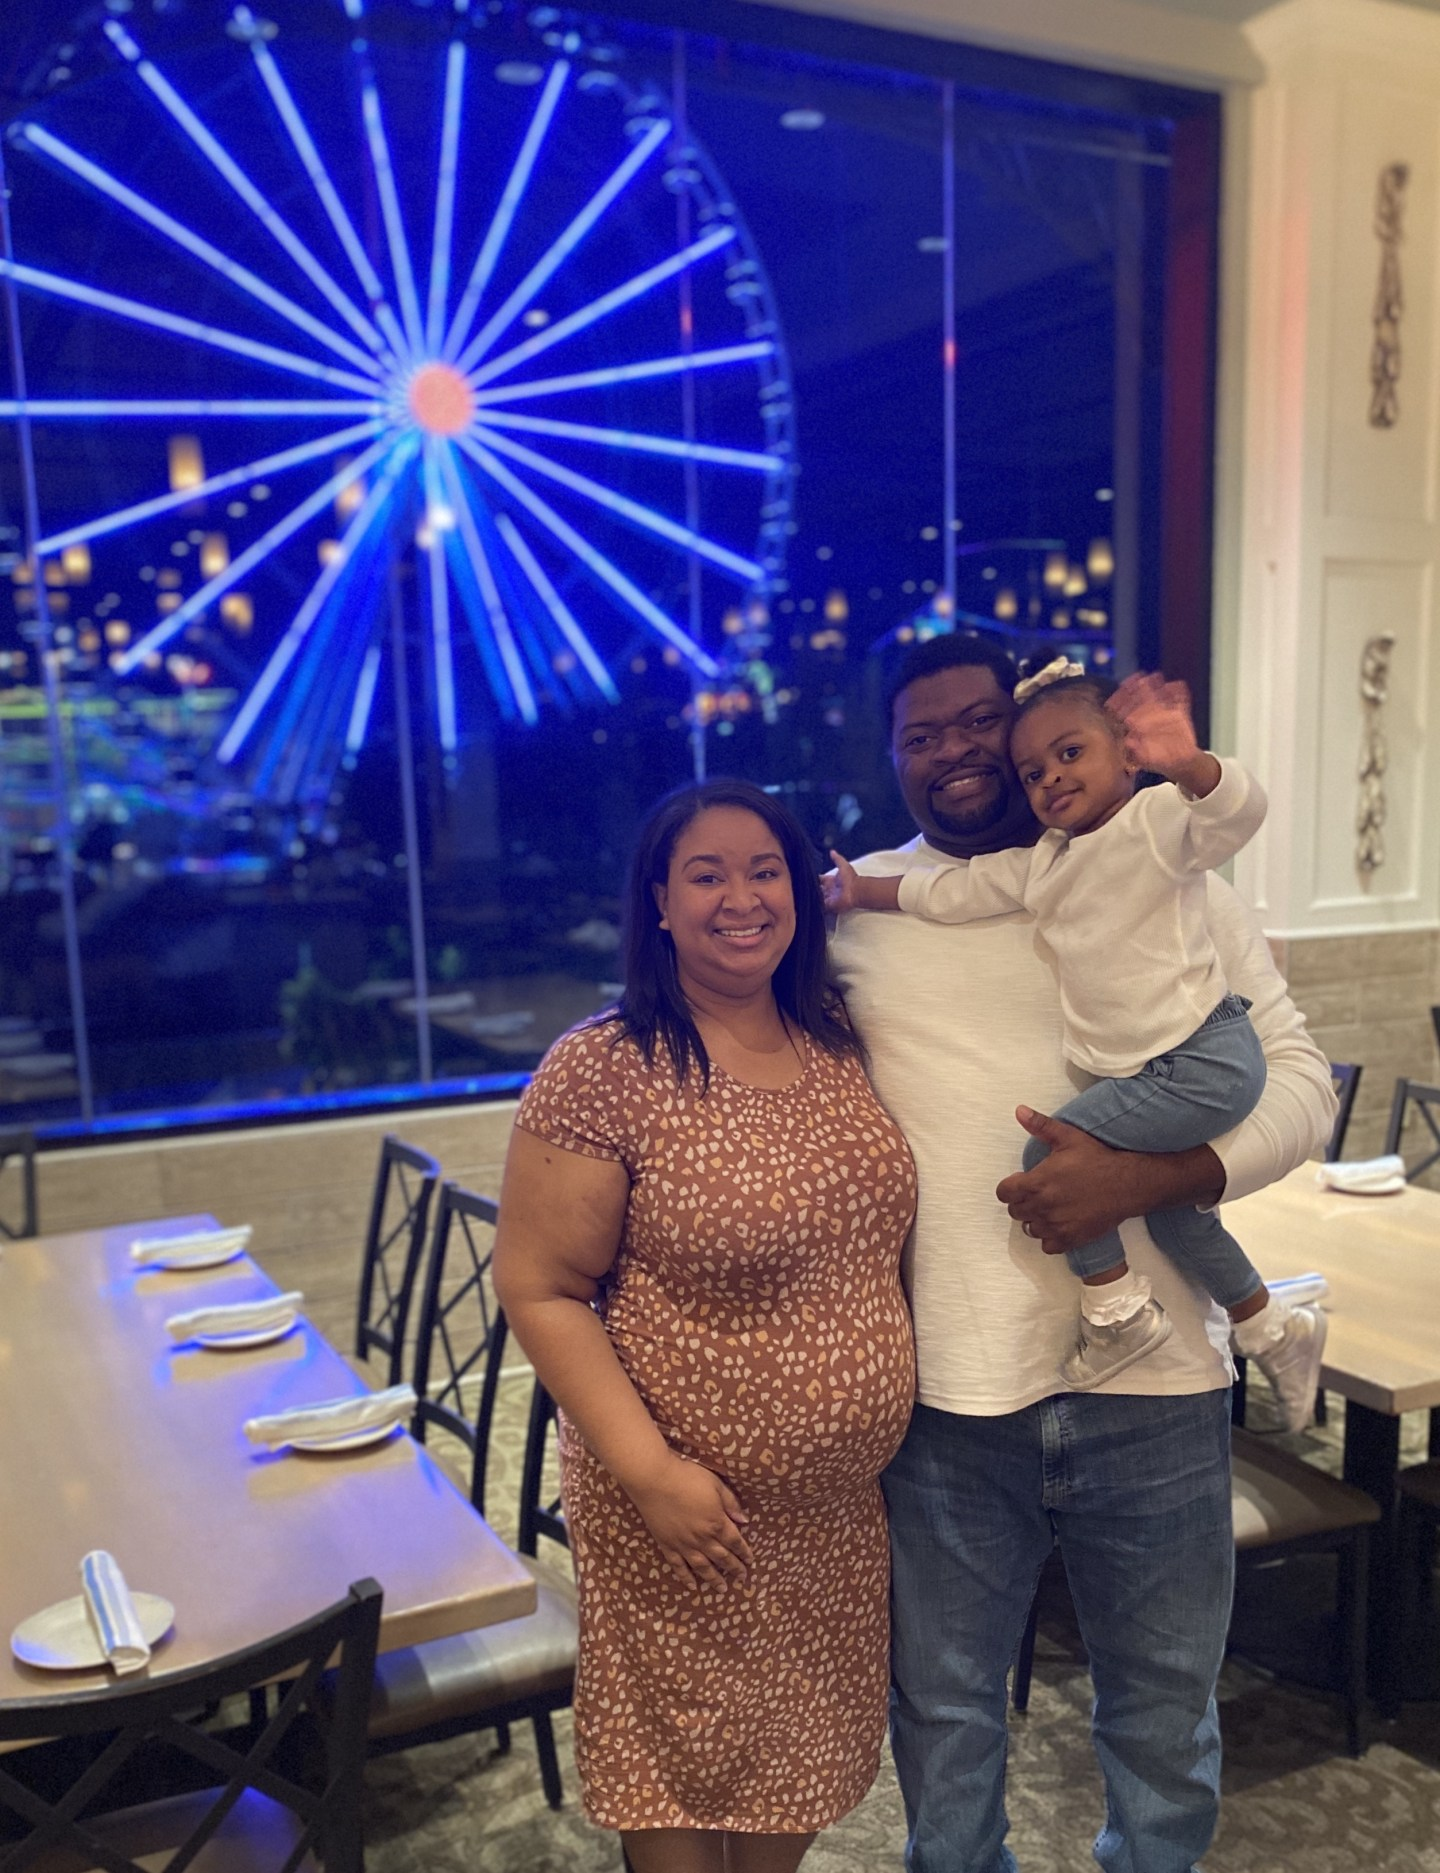 Passionate Pattens Island in Pigeon Forge Gender Reveal | Nashville Baby Guide